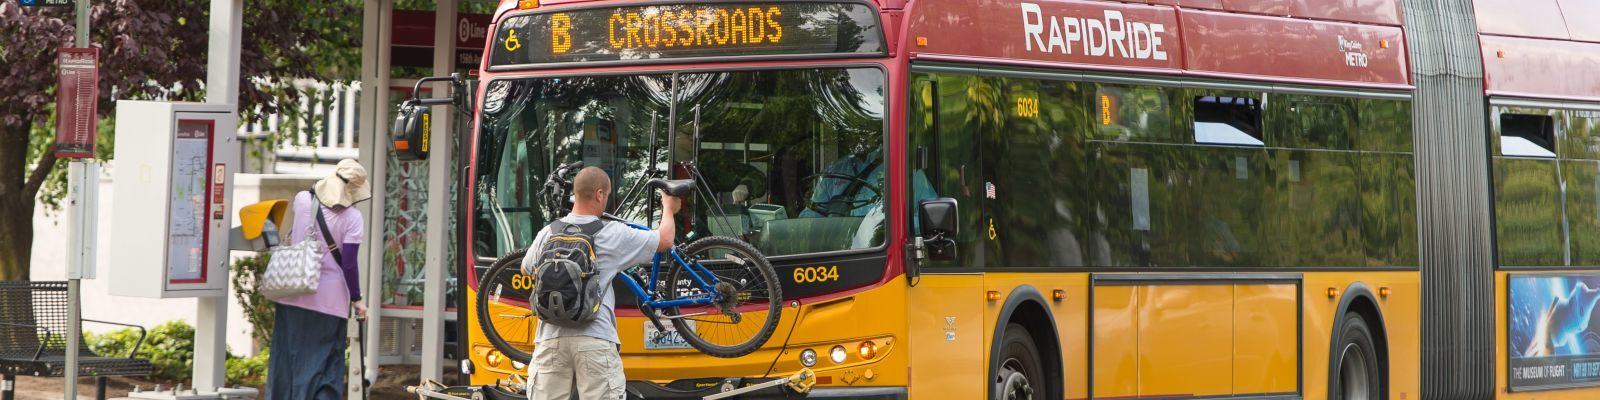 bus-bike-rack-riders-1600x400.jpg